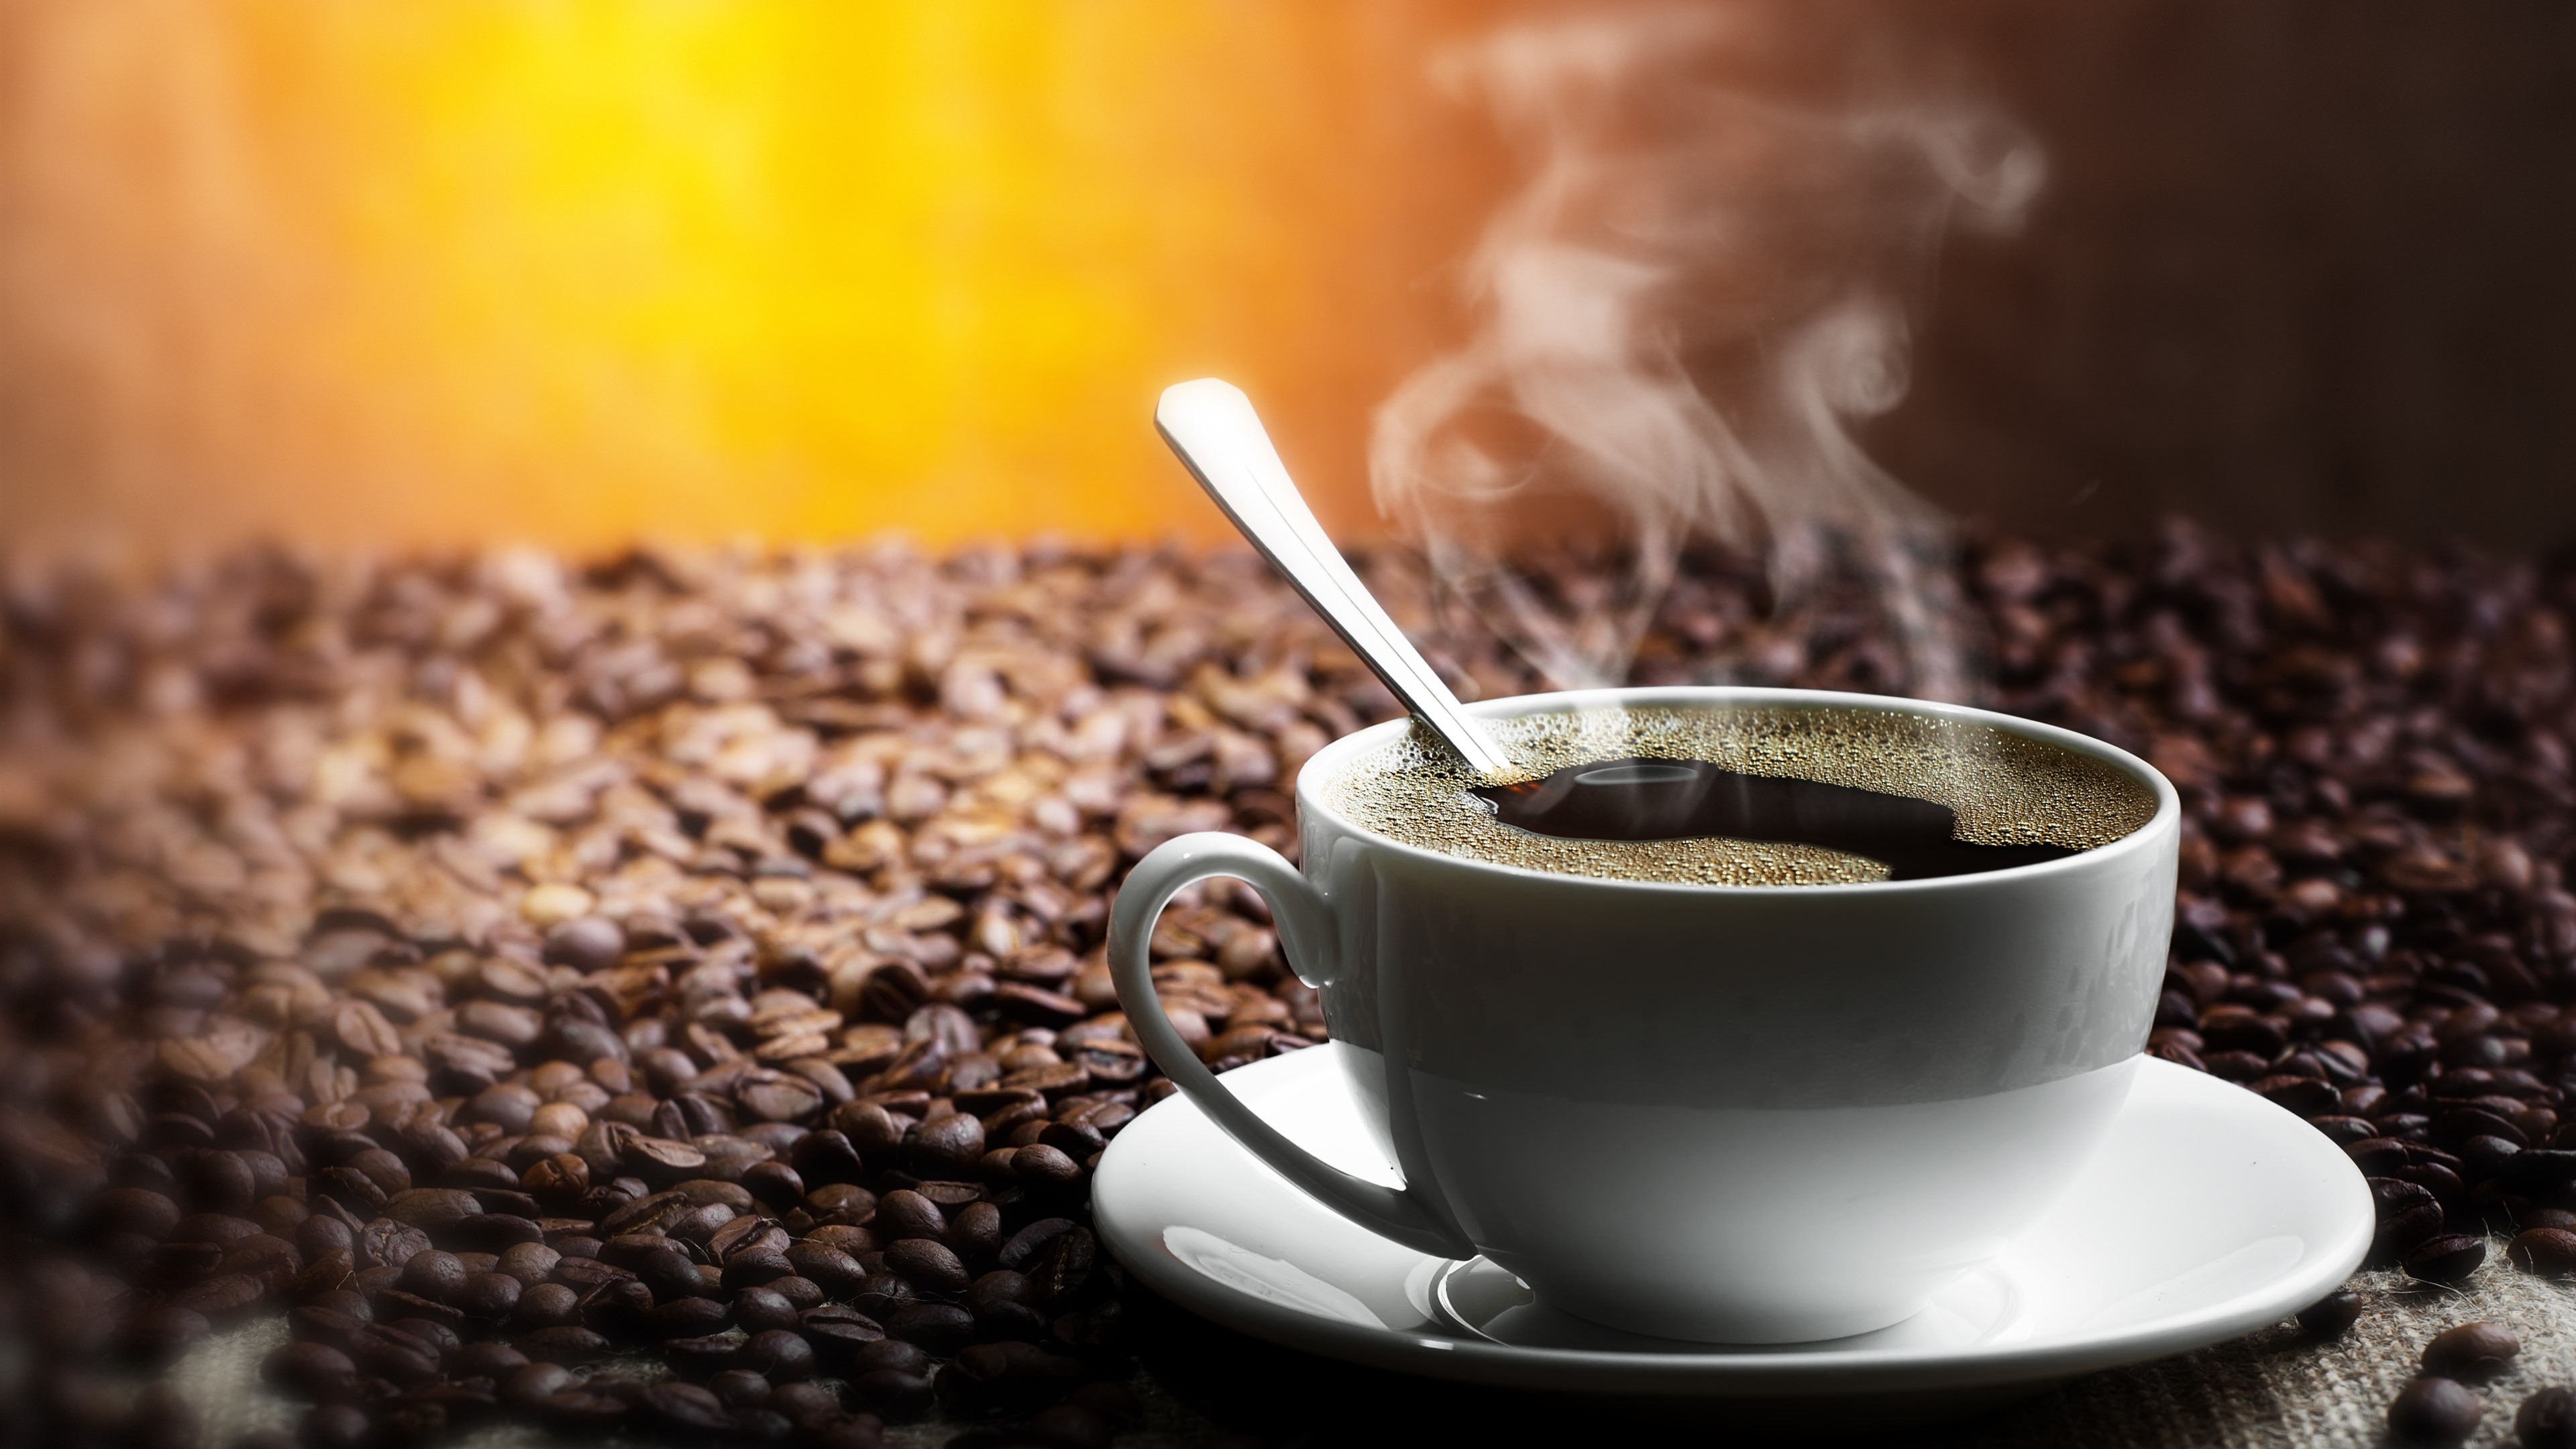 Wallpaper One Cup Coffee Steam Coffee Beans 3840x2160 Uhd 4k Picture Image